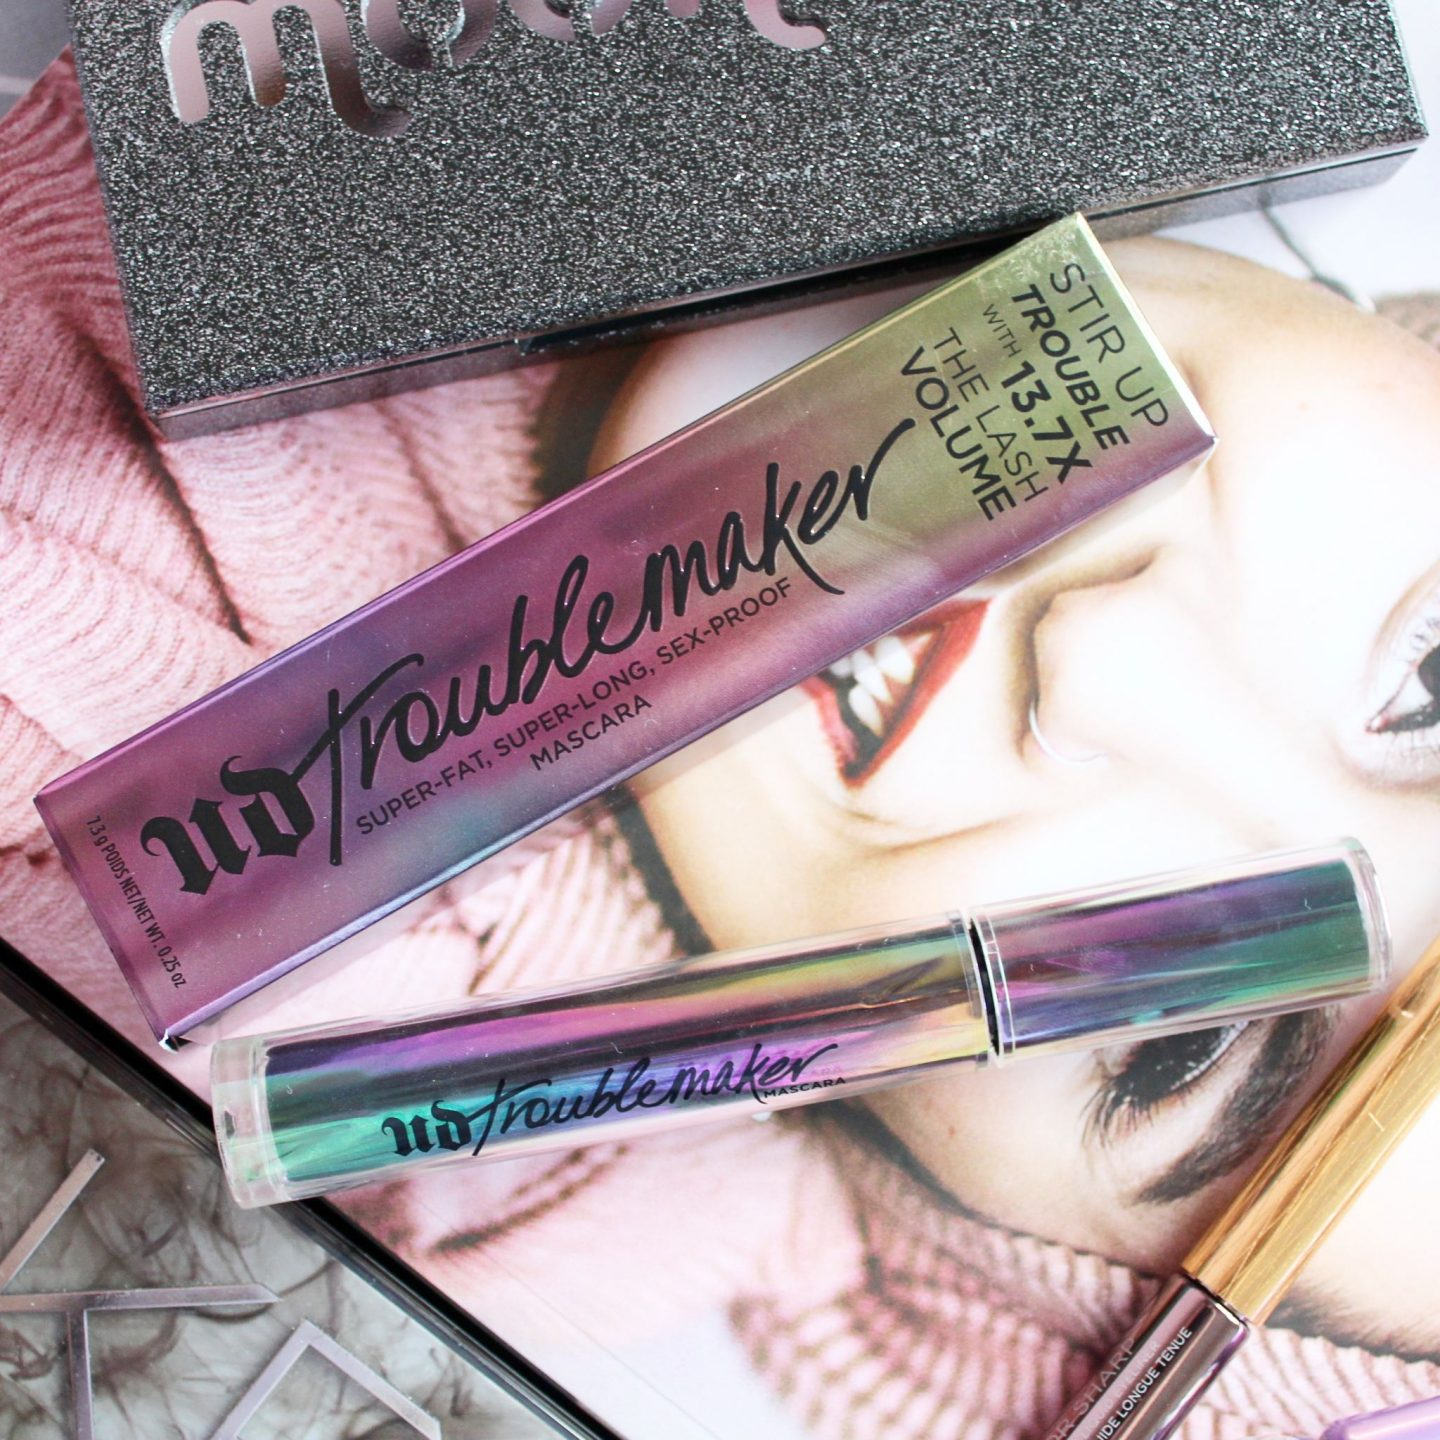 Urban Decay Troublemaker Mascara | Here Comes Trouble